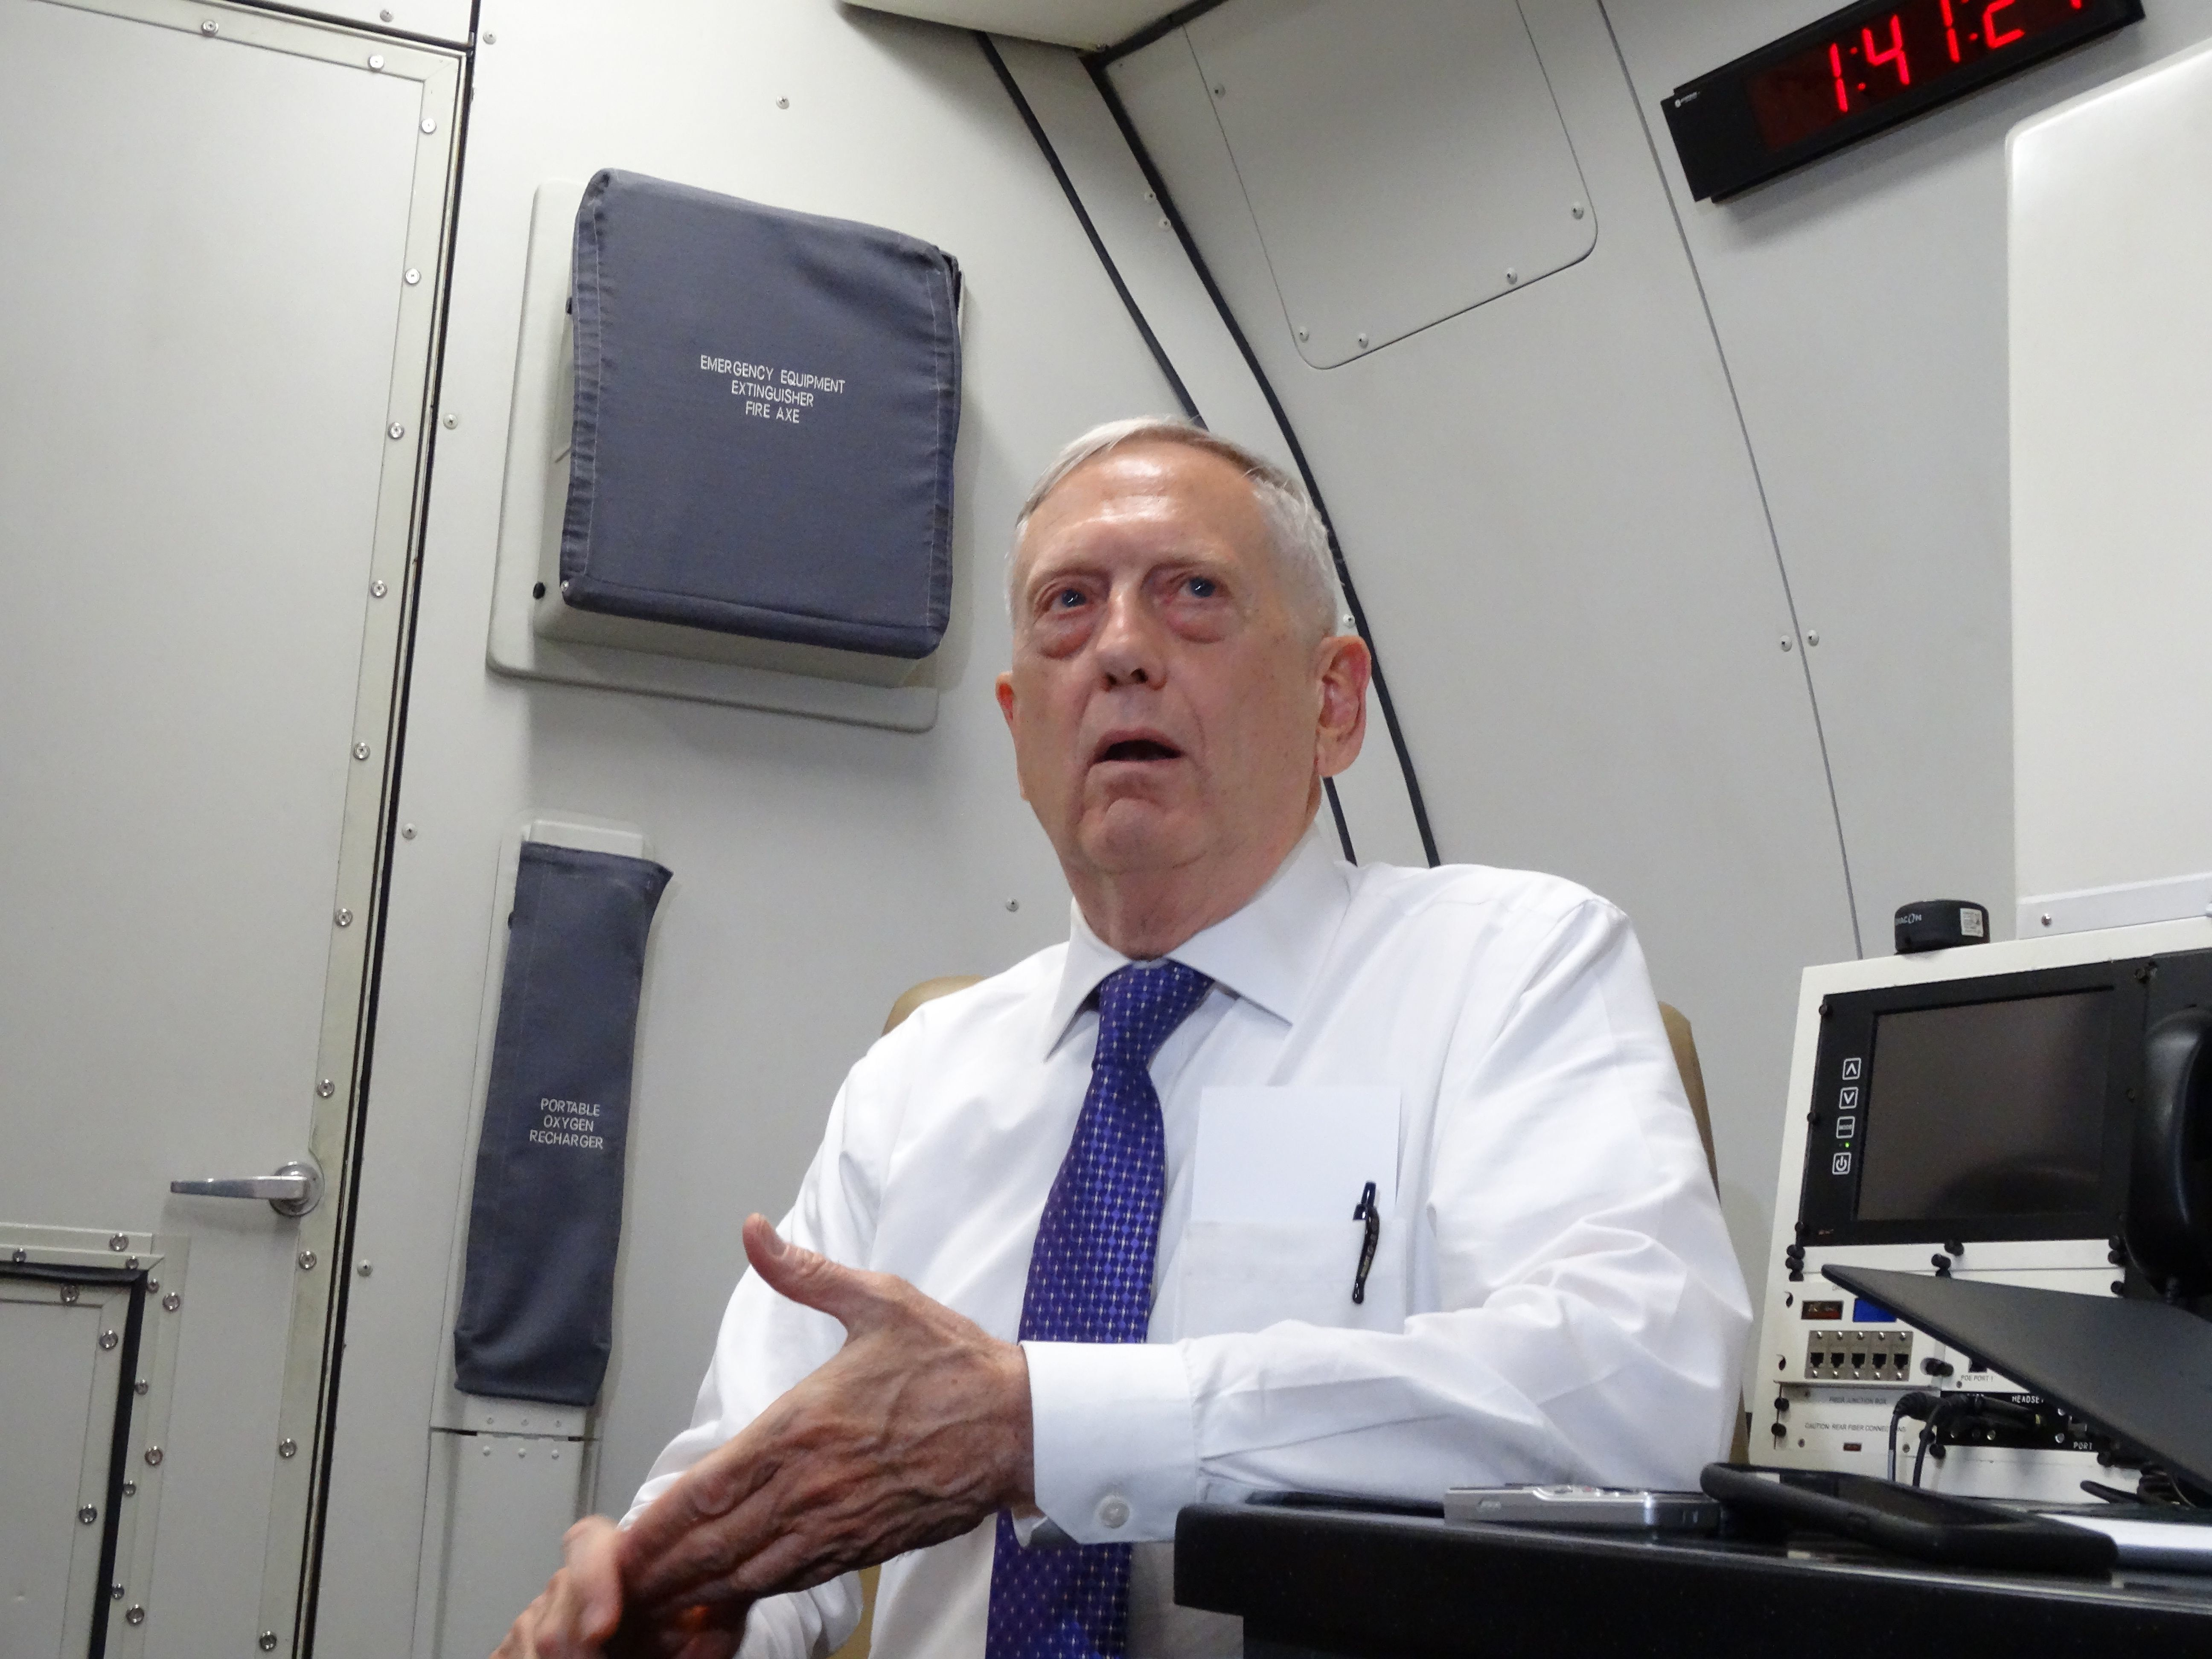 US Defense Secretary James Mattis speaks to reporters on board a flight to Jordan for the start of a regional tour on August 20, 2017.  / AFP PHOTO / Paul HANDLEY        (Photo credit should read PAUL HANDLEY/AFP/Getty Images)